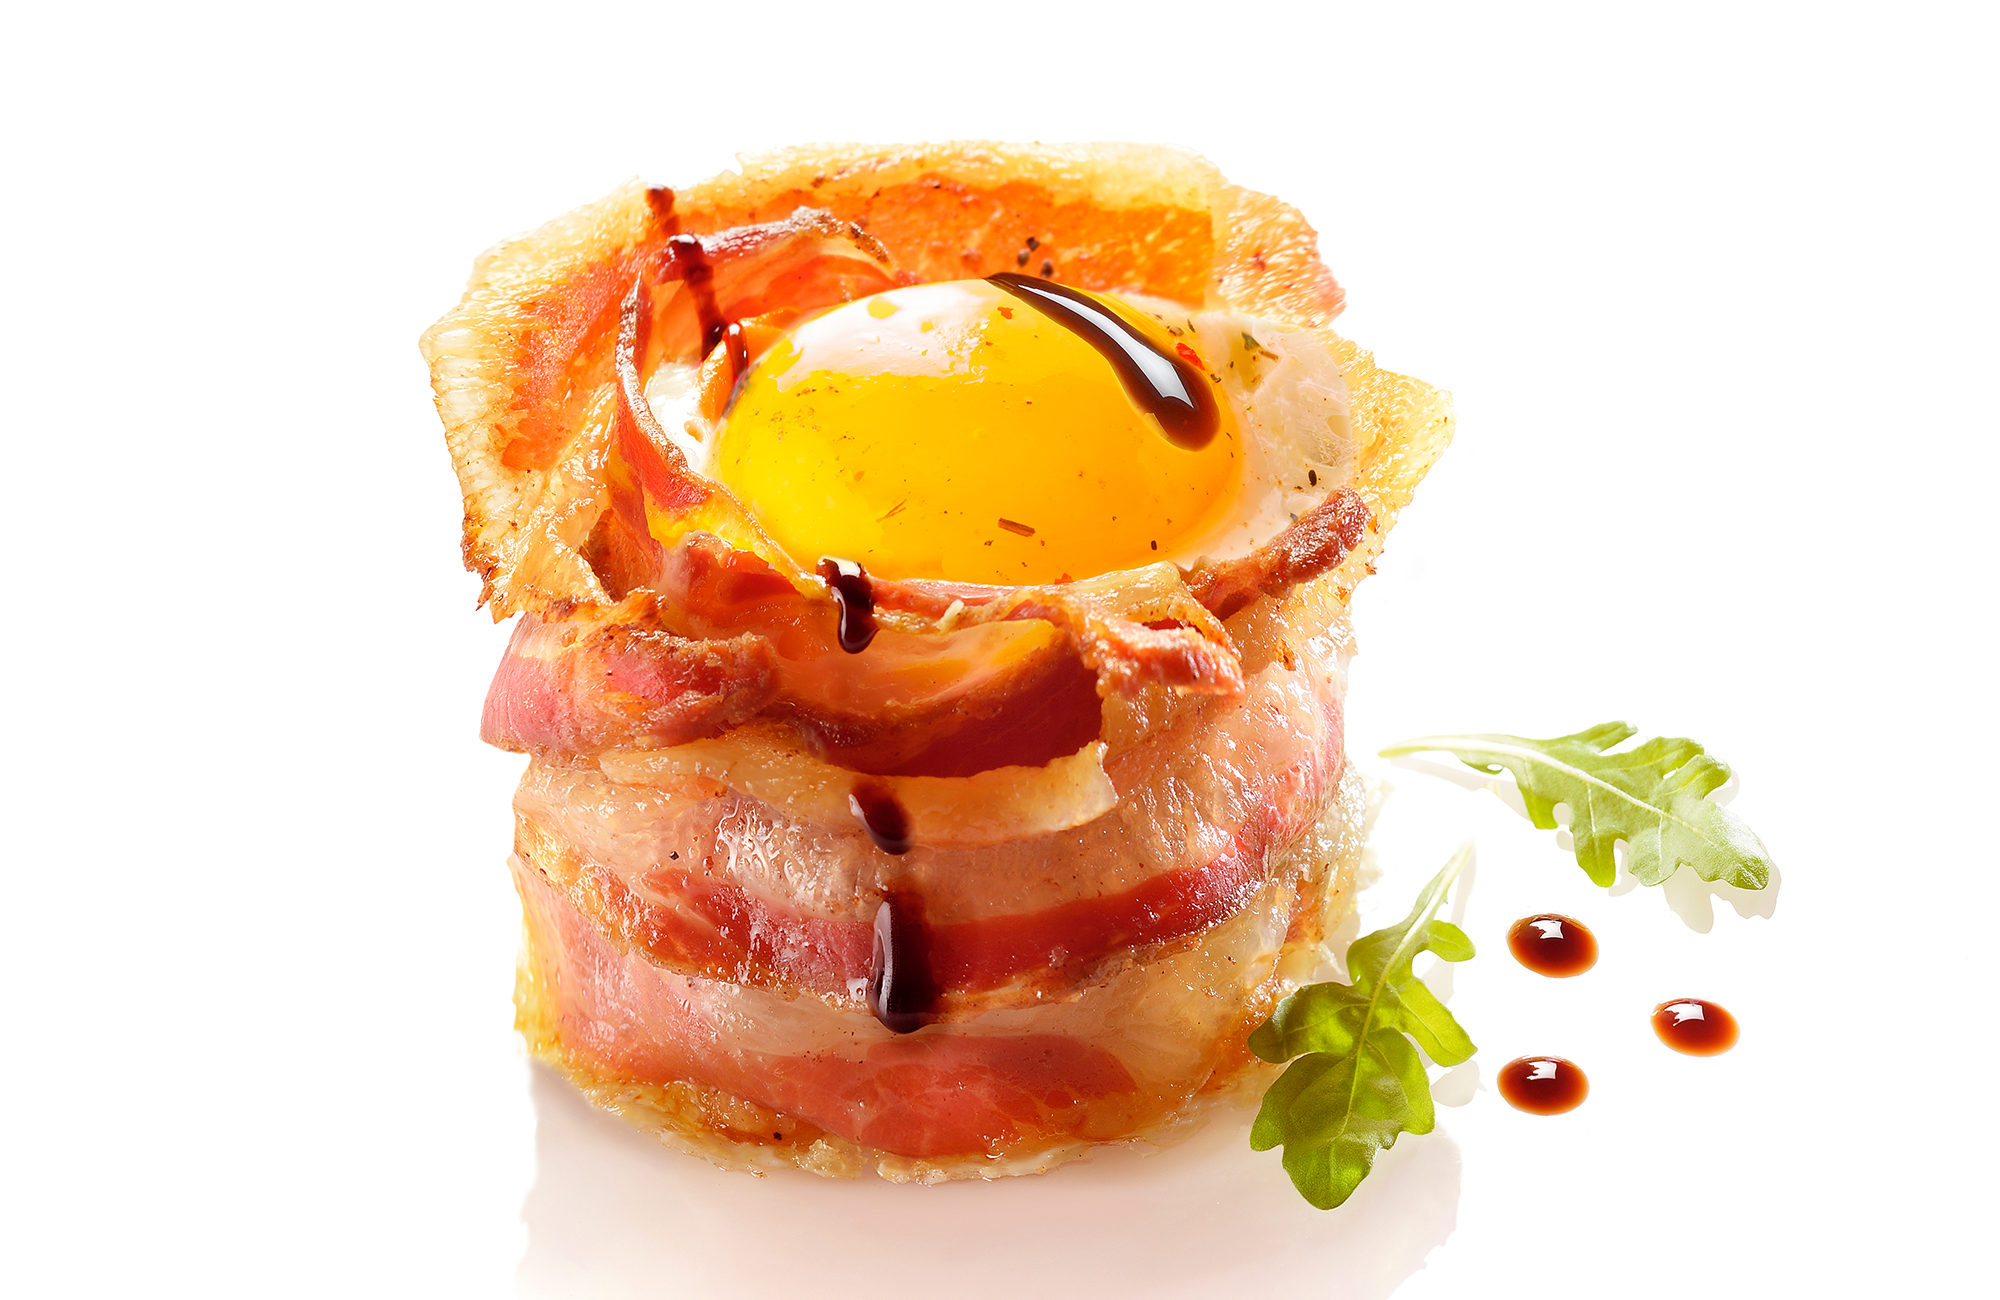 Bacon and Eggs - Ponti